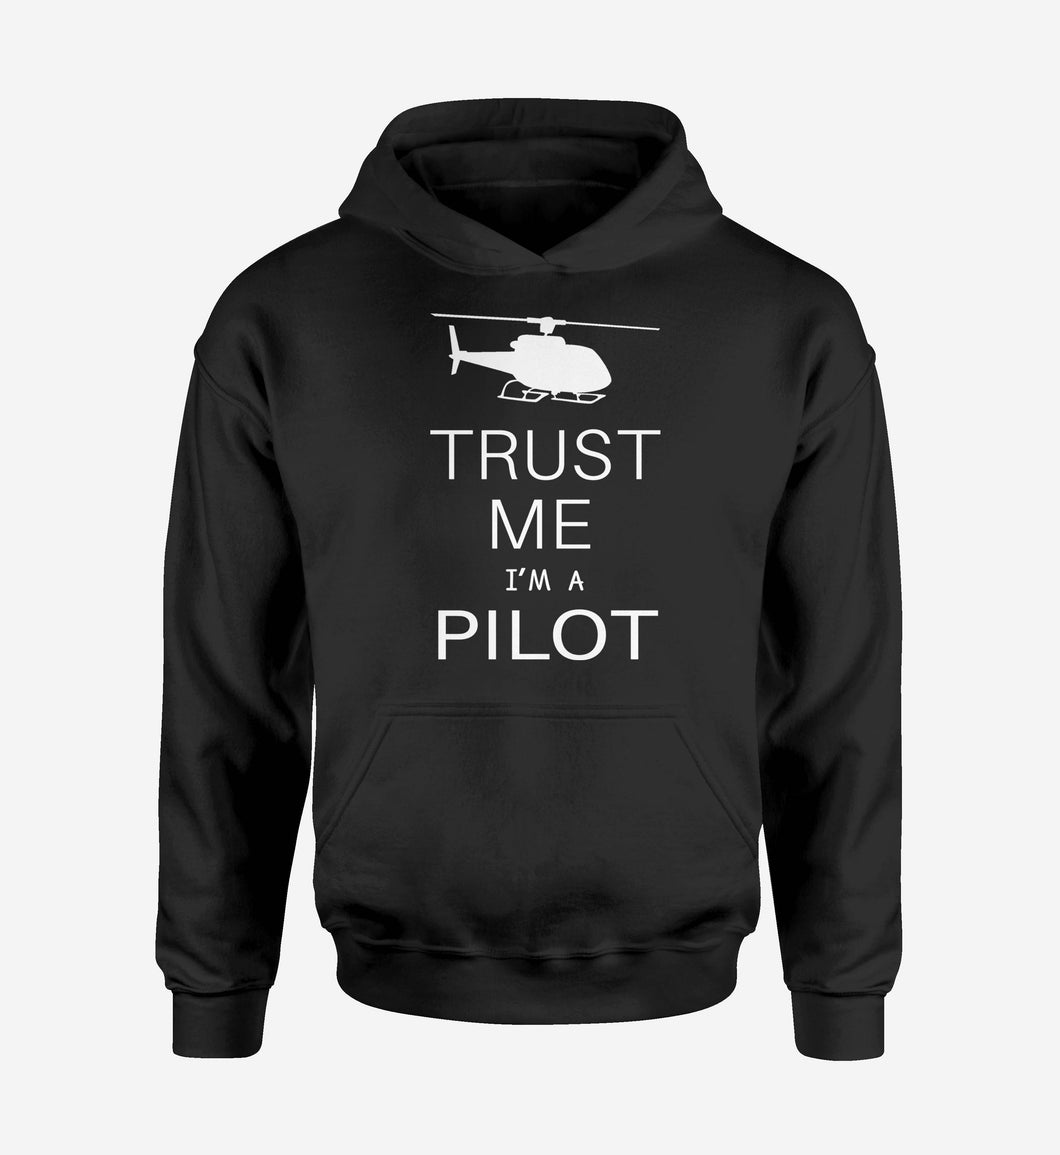 Trust Me I'm a Pilot (Helicopter) Designed Hoodies